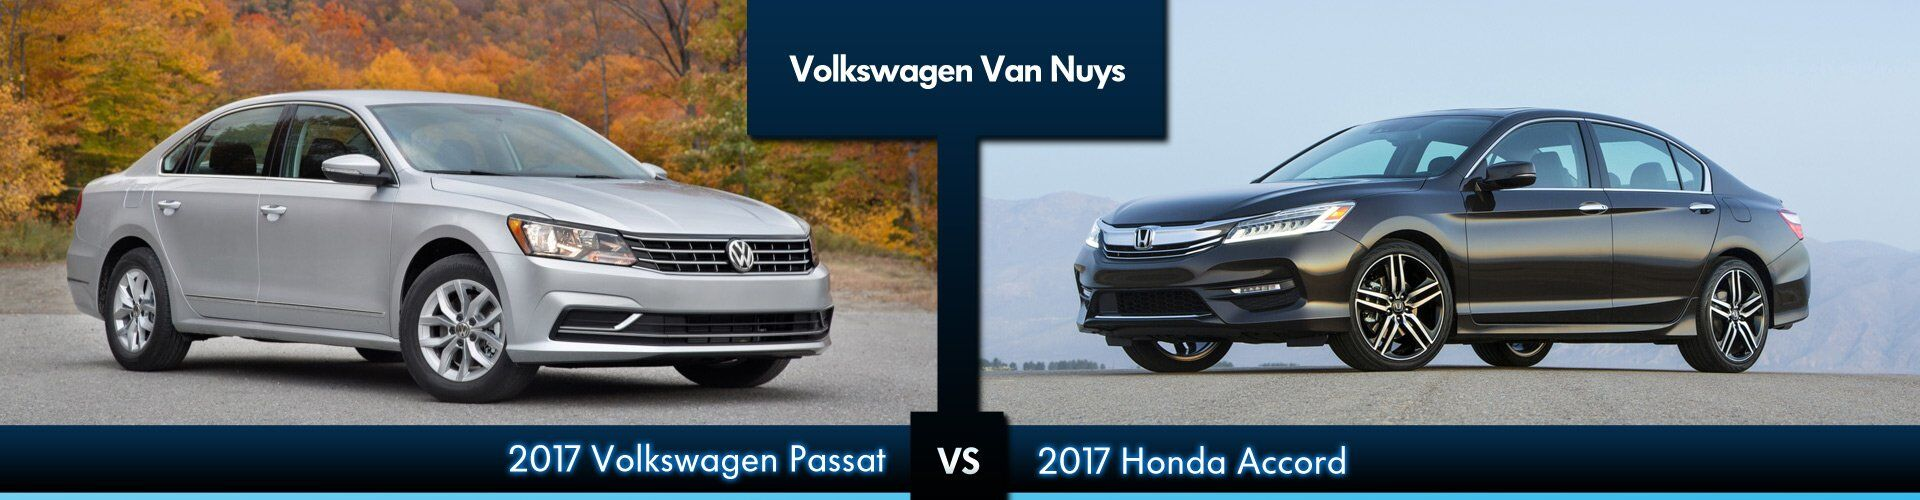 Compare The All New Volkswagen Passat To The Hyundai